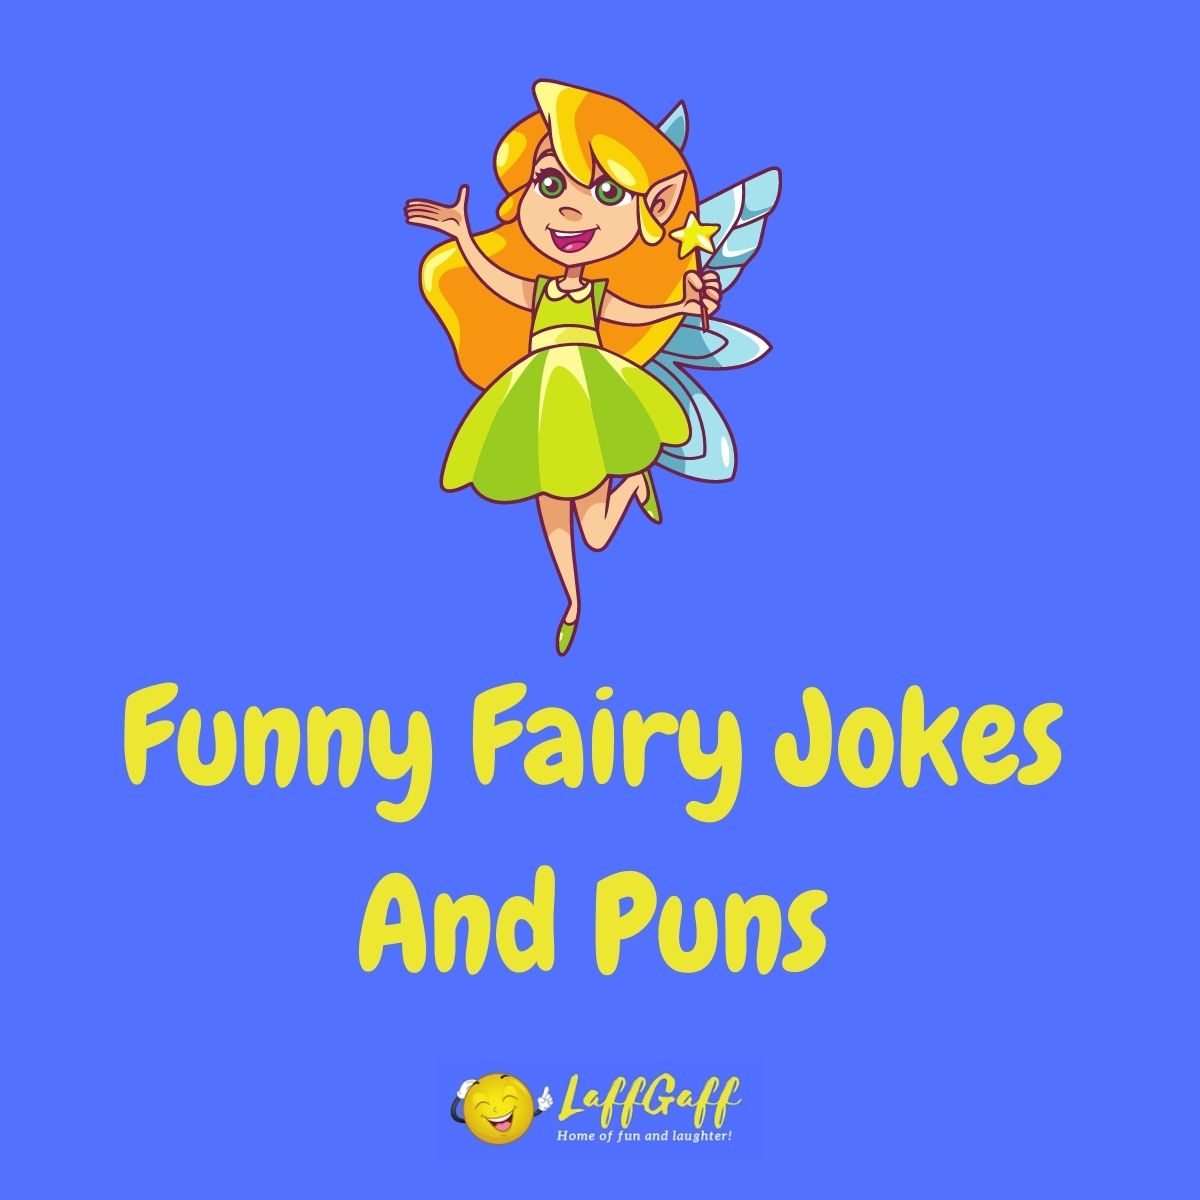 Featured image for a page of funny fairy jokes and puns.